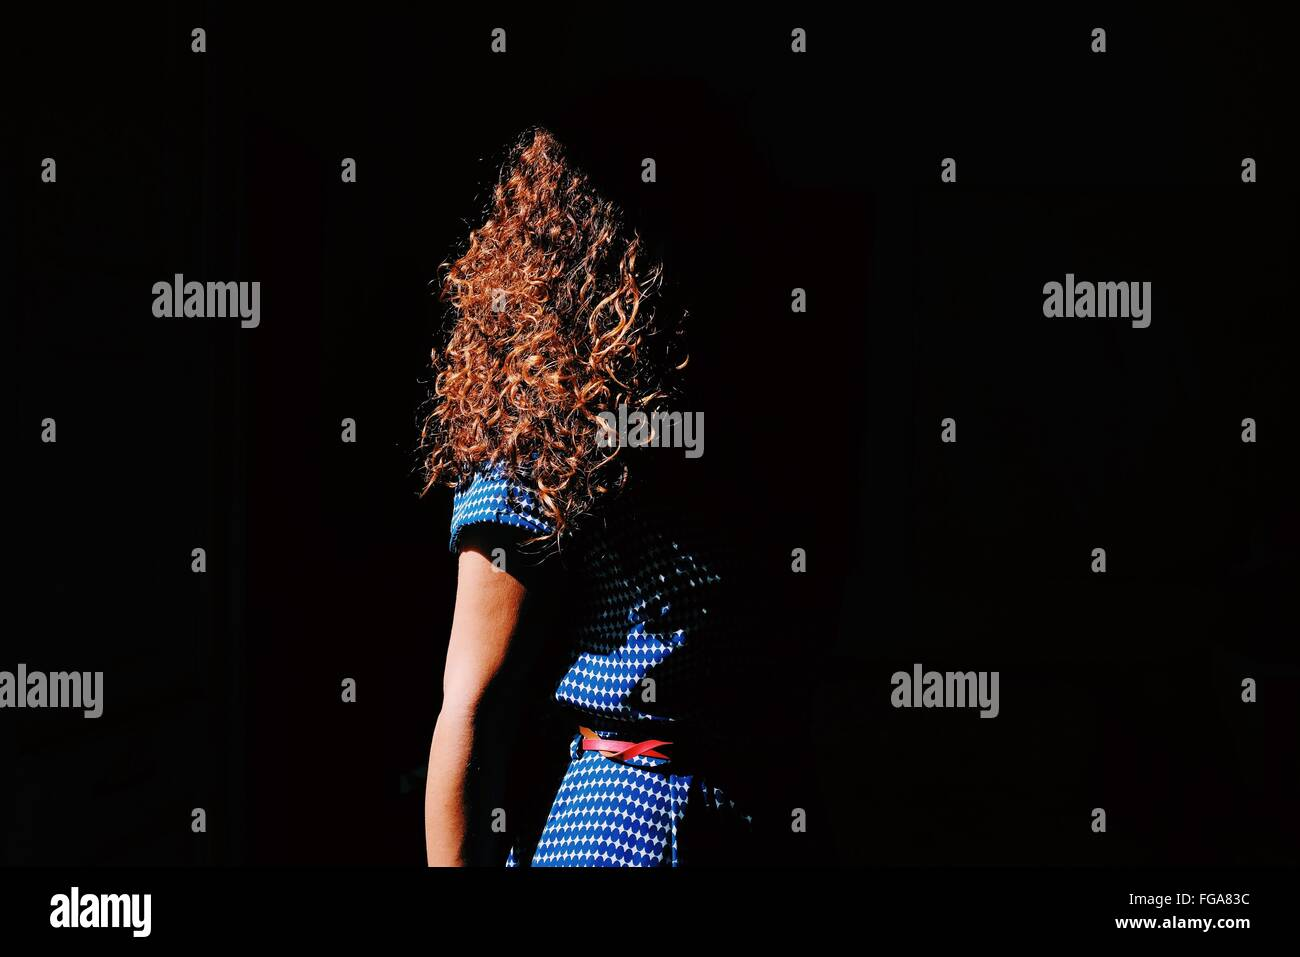 Brown Curly Hair Woman In Sunlight - Stock Image